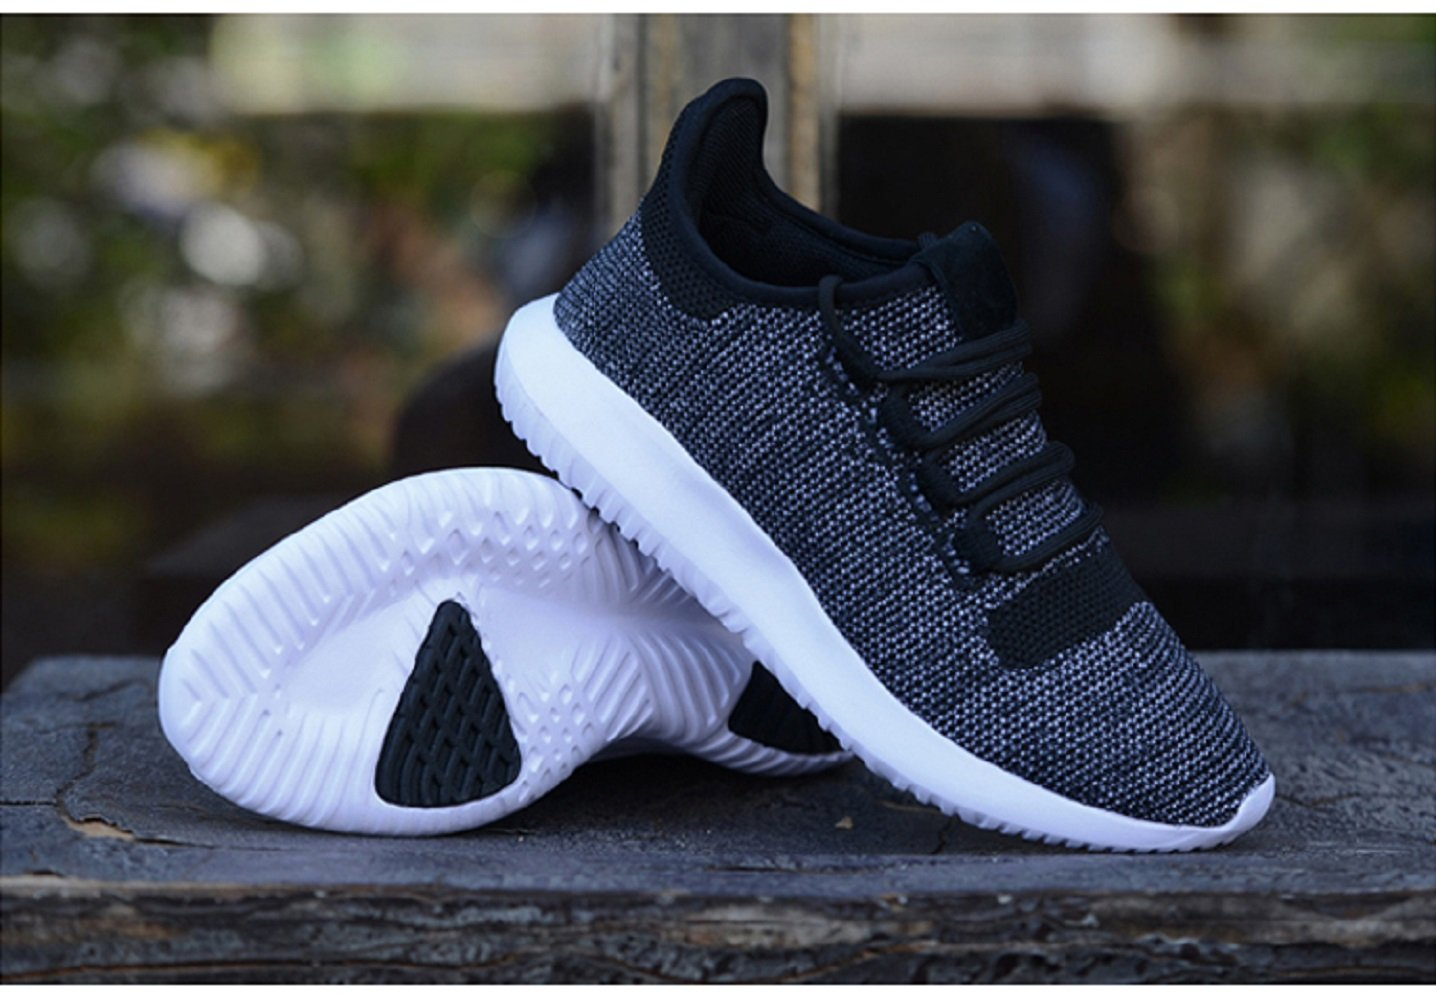 GAOAG Sneakers Running Cushioning Lightweight Breathable Casual Shoes Unisex by GAOAG (Image #6)